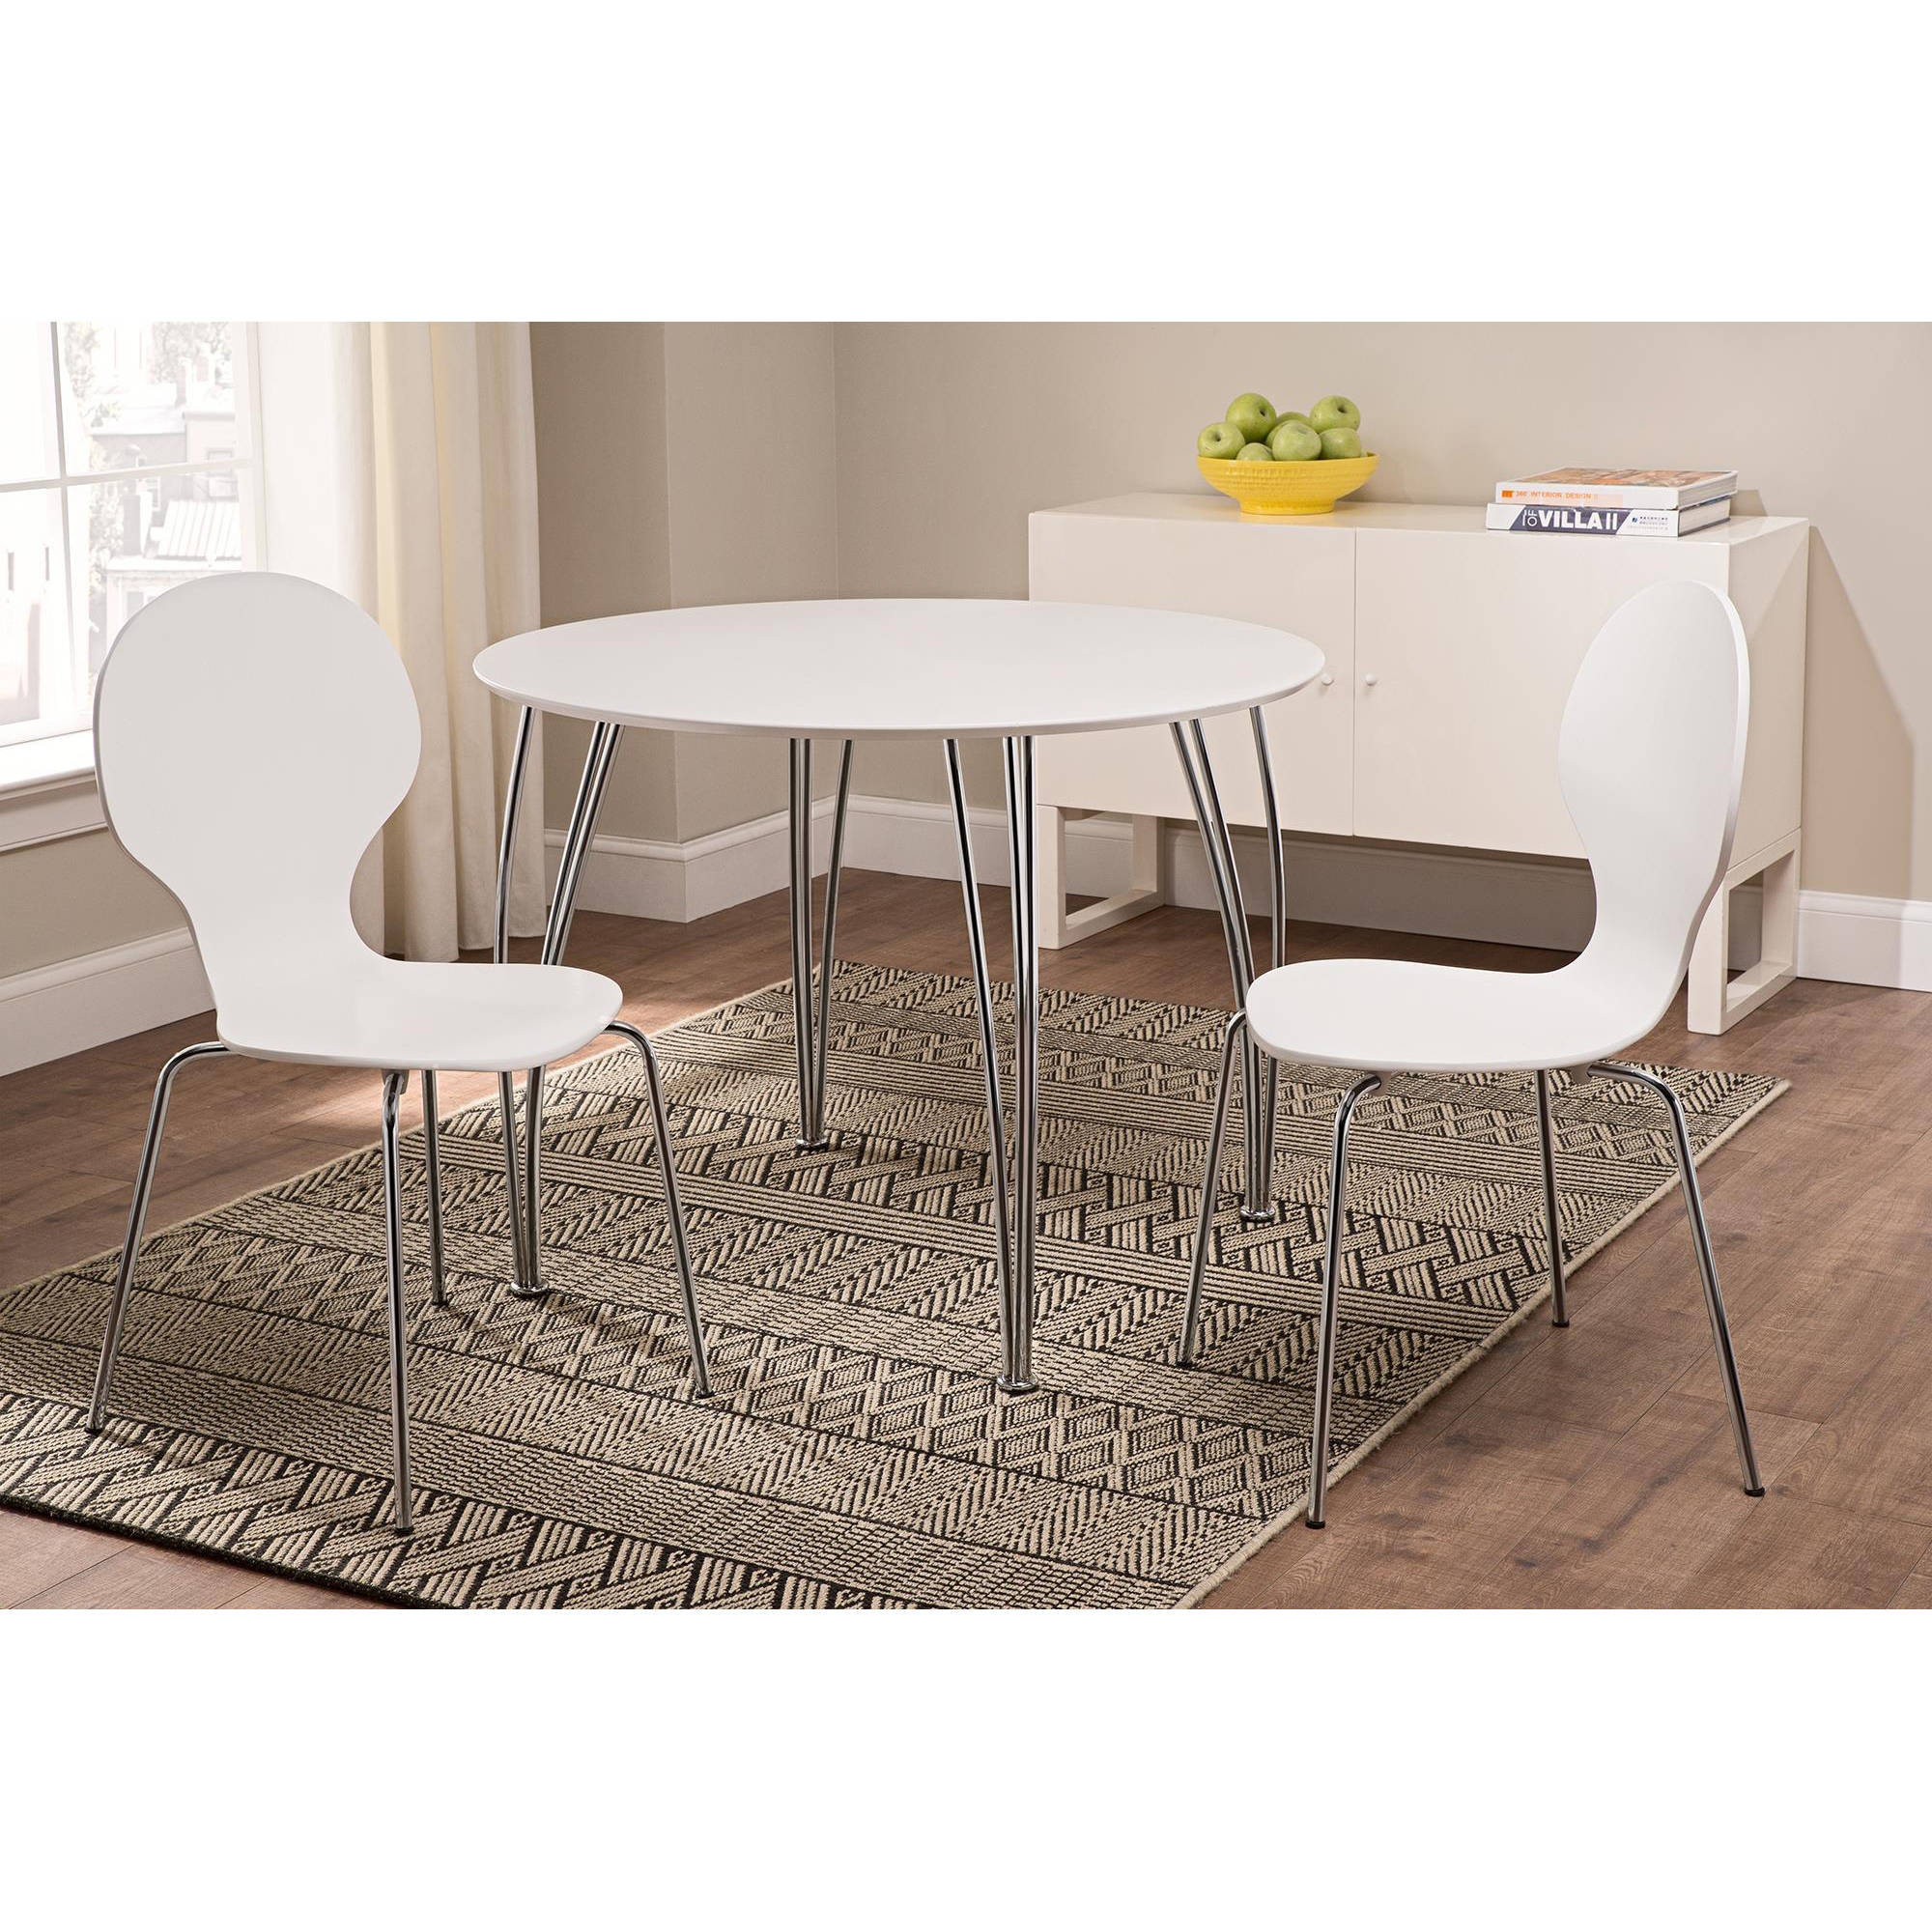 Shell Bentwood Dining Chairs, Set of 2, White